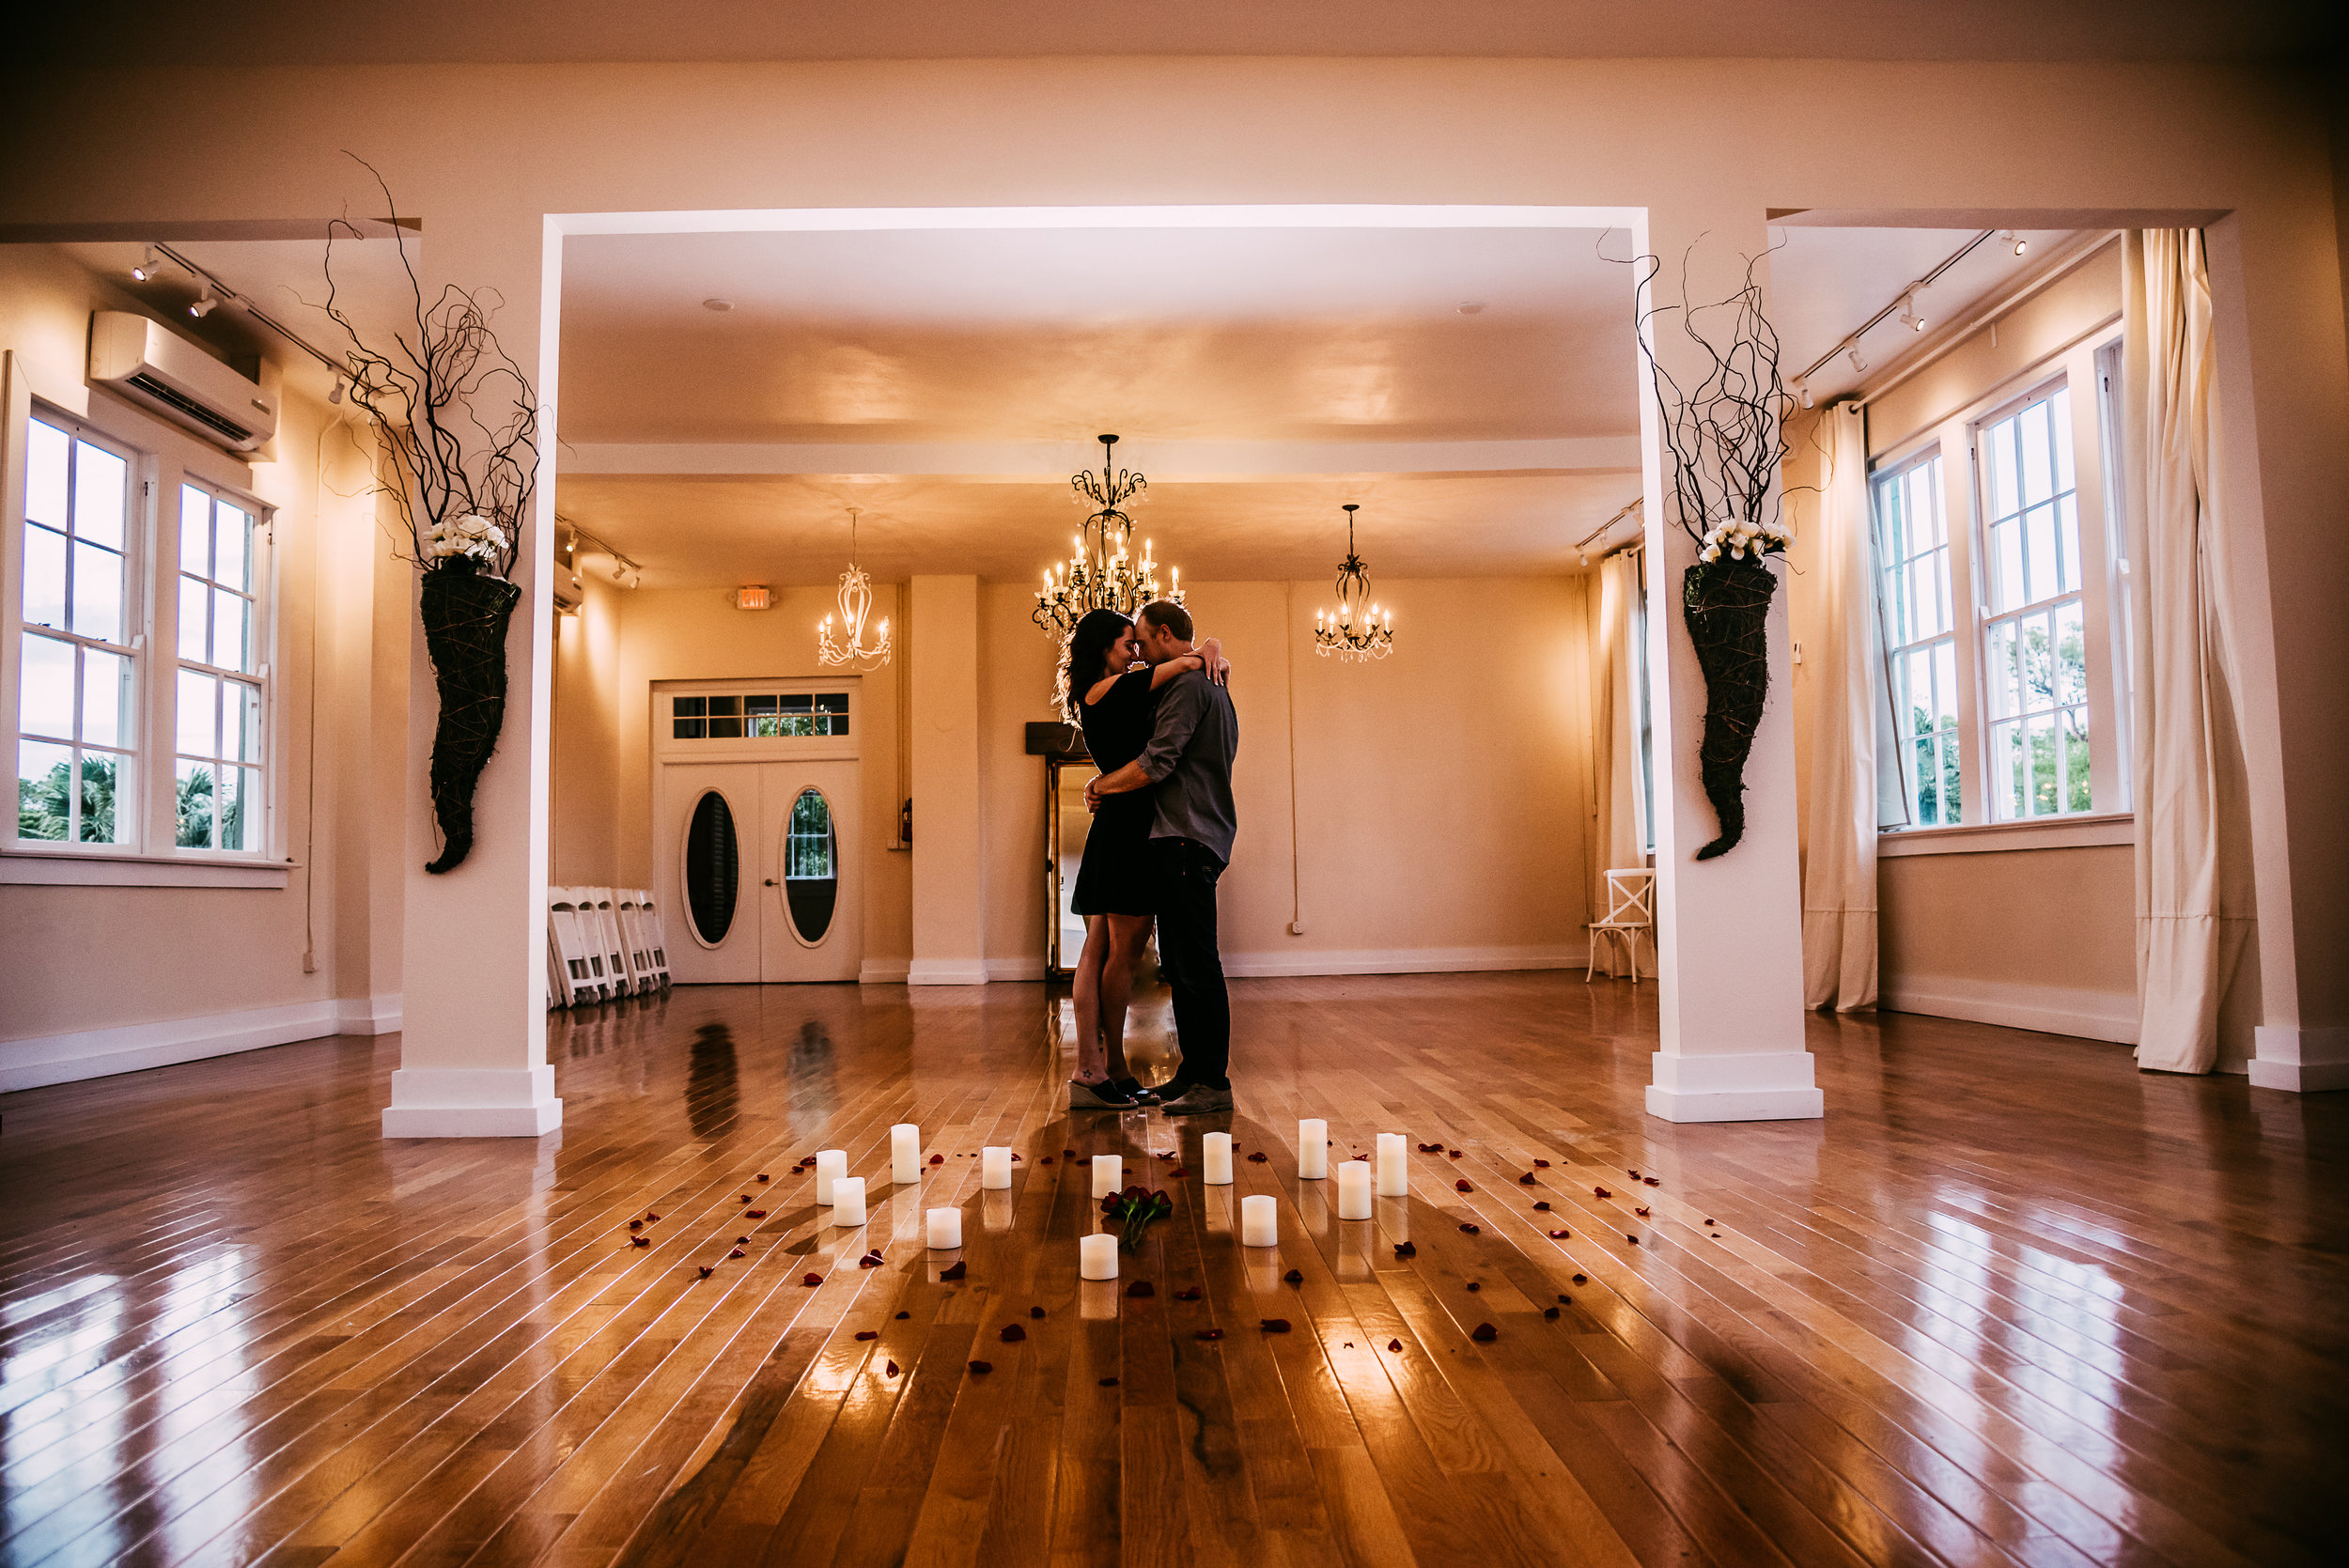 banyan-estate-malabar-fl-matthew-surprised-proposal-1-2.jpg